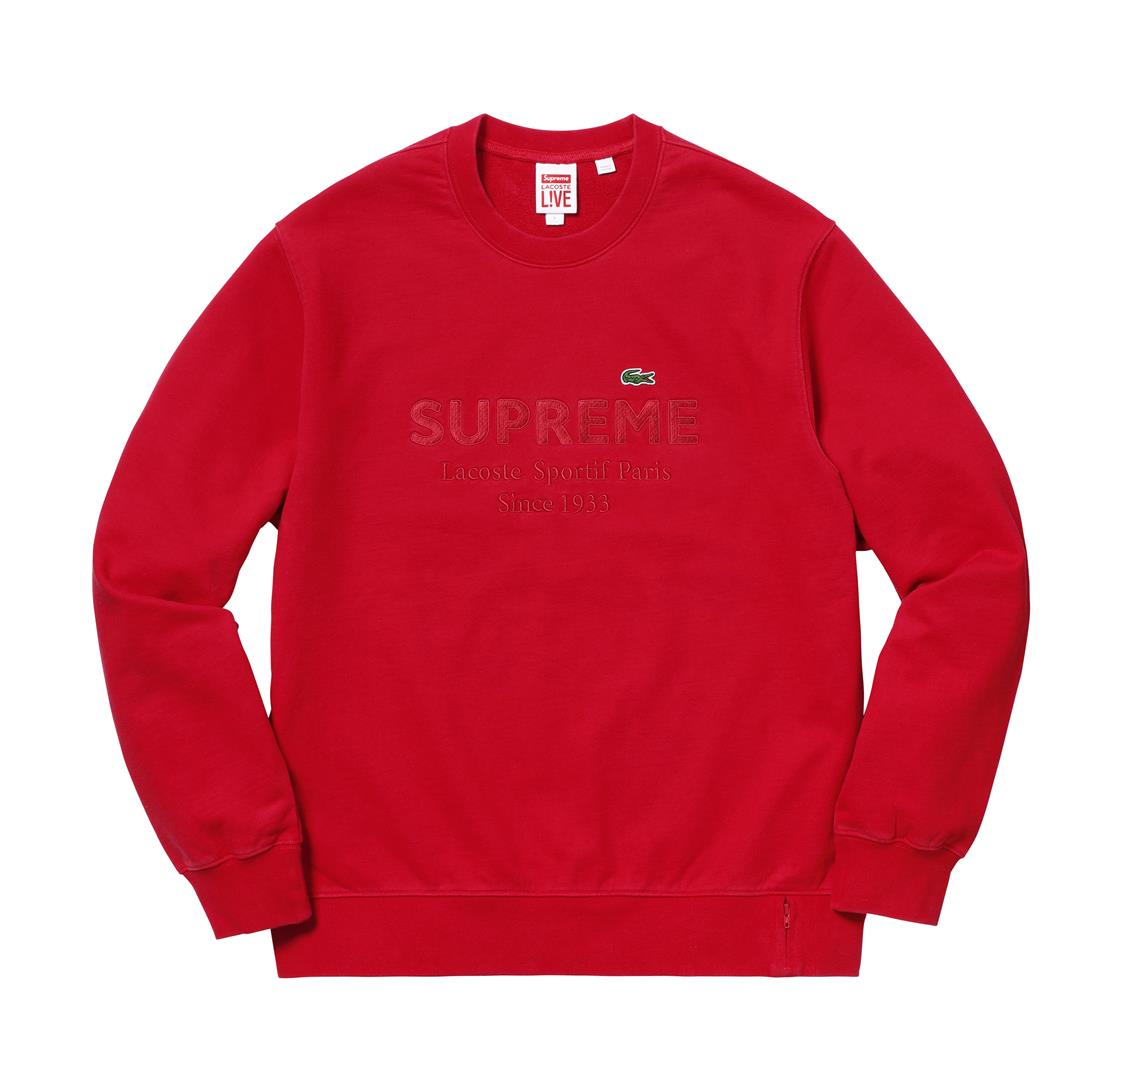 9daae6c96c4a6 073. LACOSTE X SUPREME (Large) -